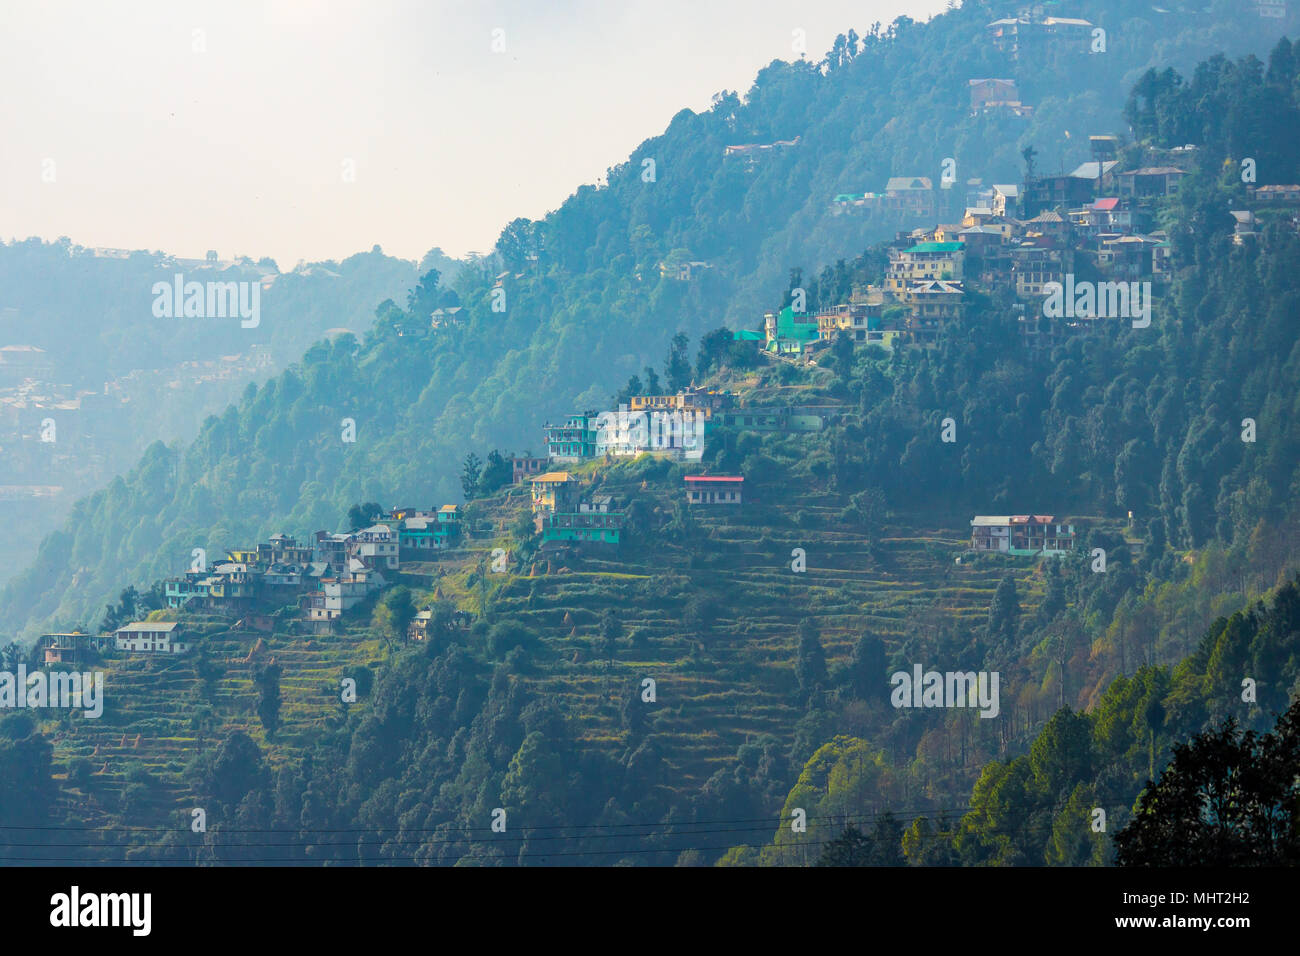 Beautiful homes in the town of Dalhousie, Himachal Pradesh, India, Asia. Stock Photo